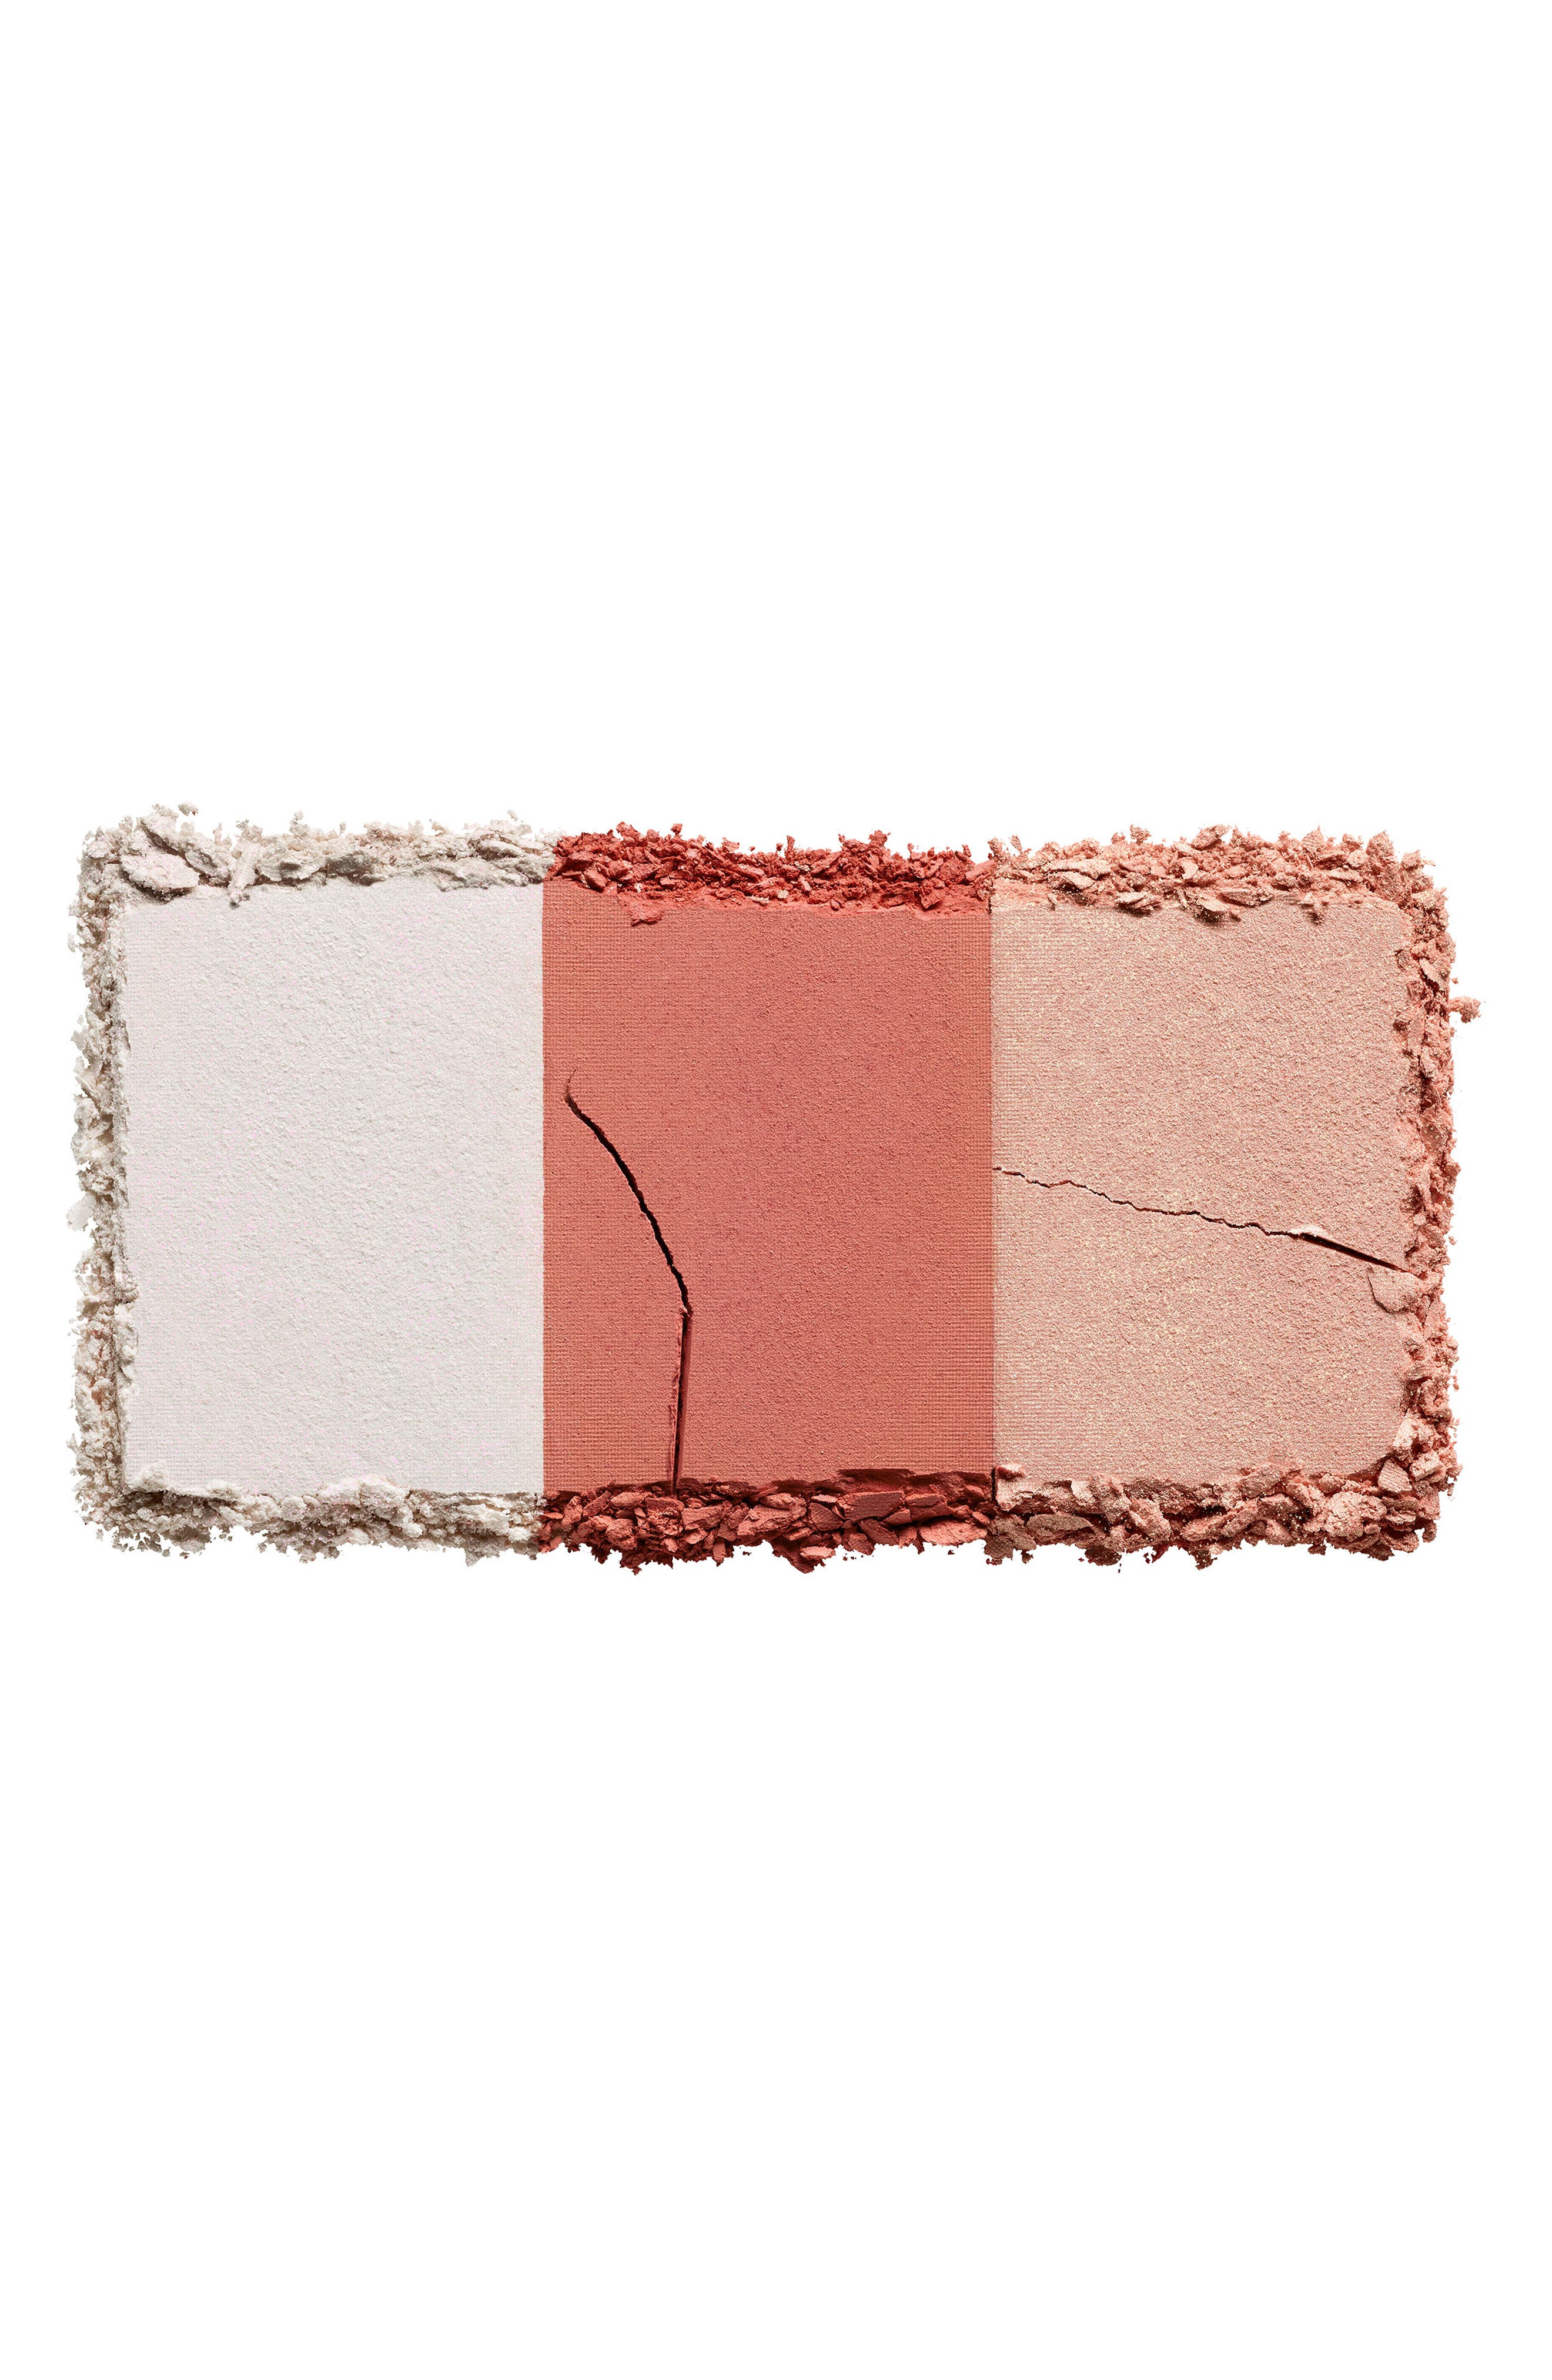 Naked Cherry Highlight and Blush Palette,                             Alternate thumbnail 3, color,                             NO COLOR